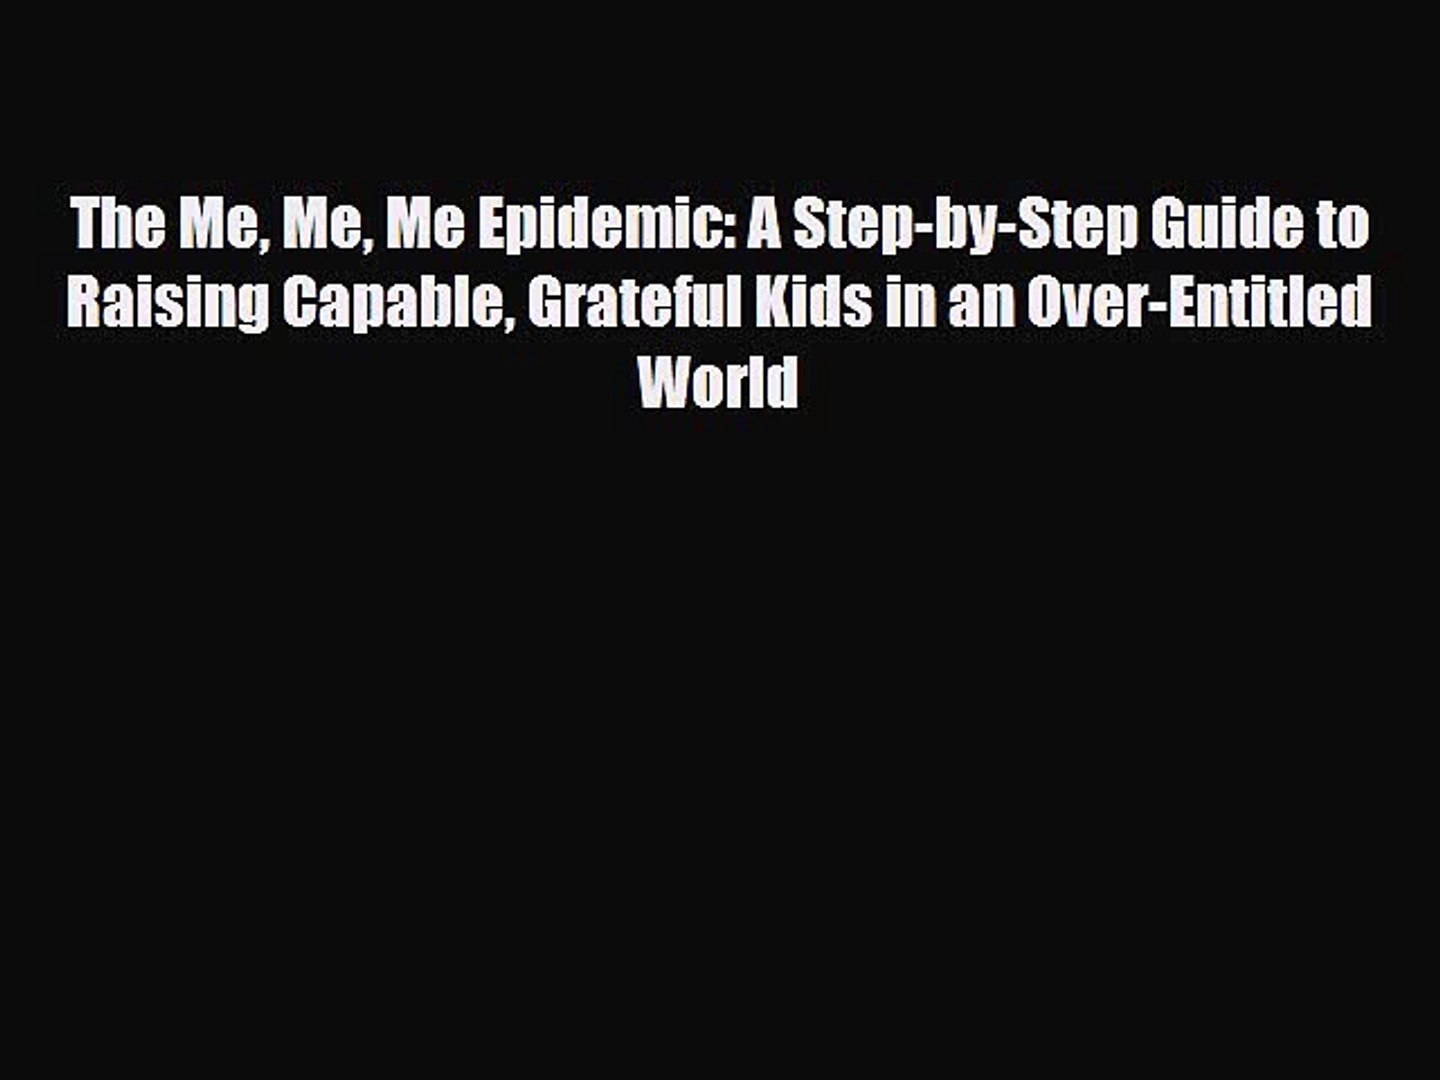 [PDF] The Me Me Me Epidemic: A Step-by-Step Guide to Raising Capable Grateful Kids in an Over-Entitl